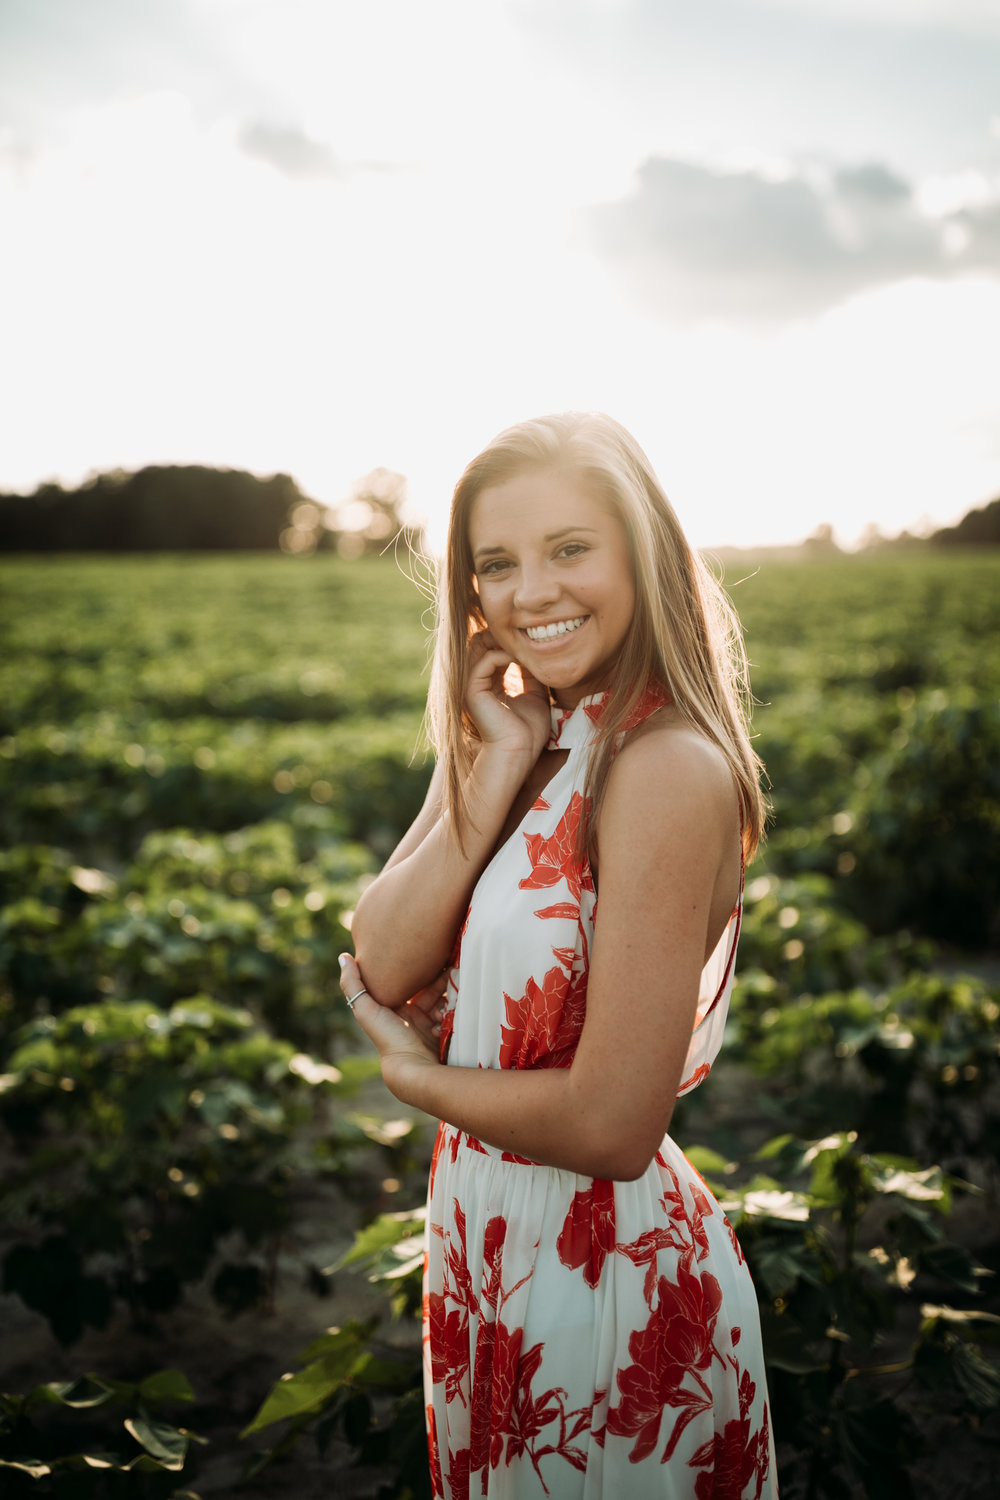 High School Senior - quite possibly the sweetest time of life